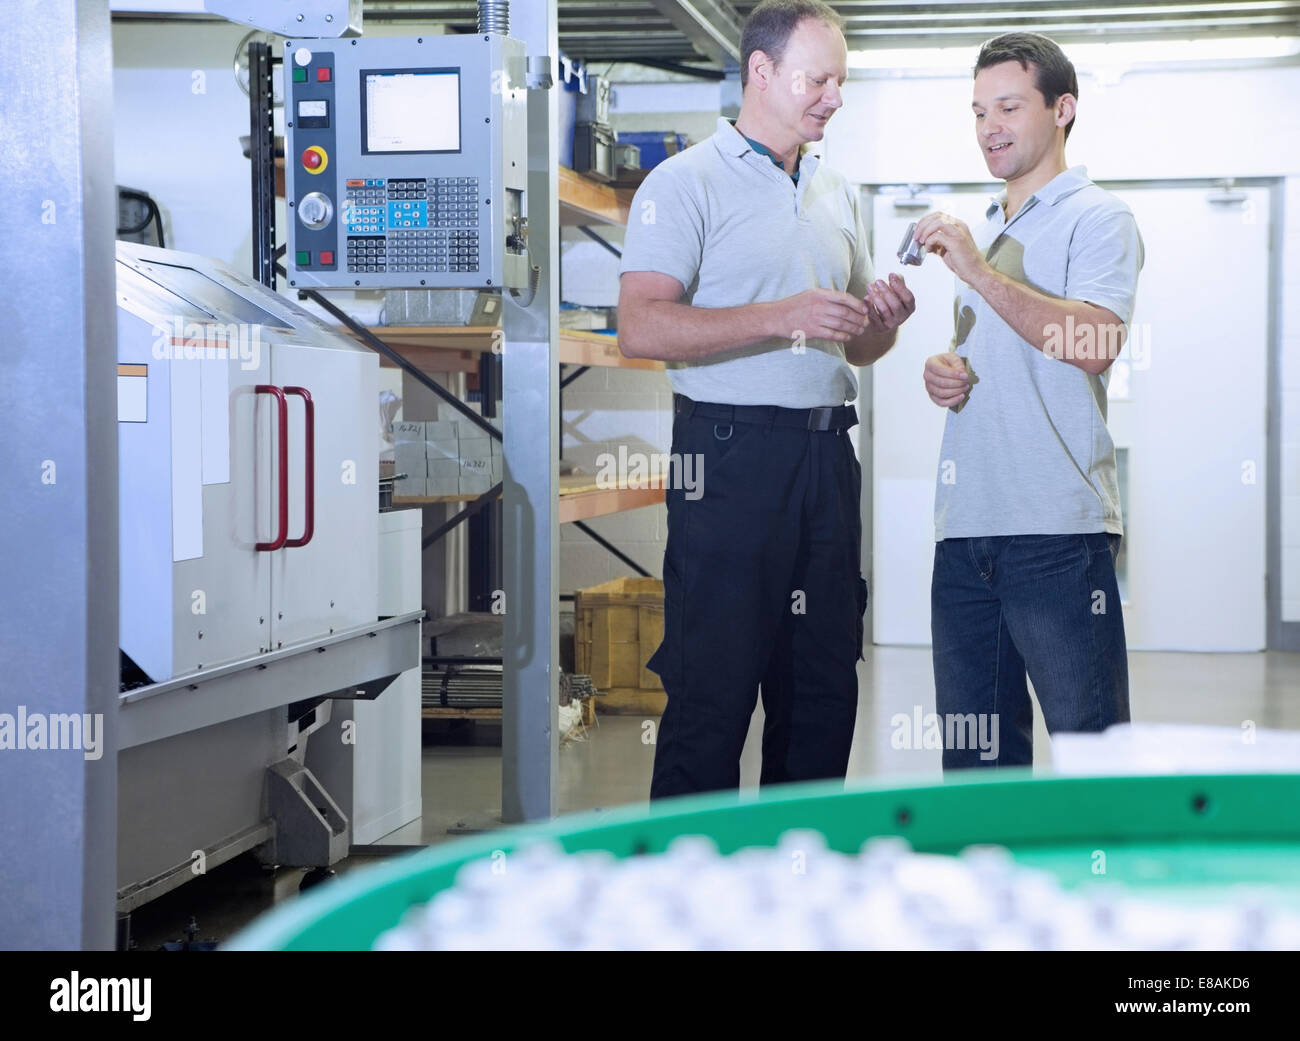 Engineers in discussion in CNC precision engineering centre - Stock Image